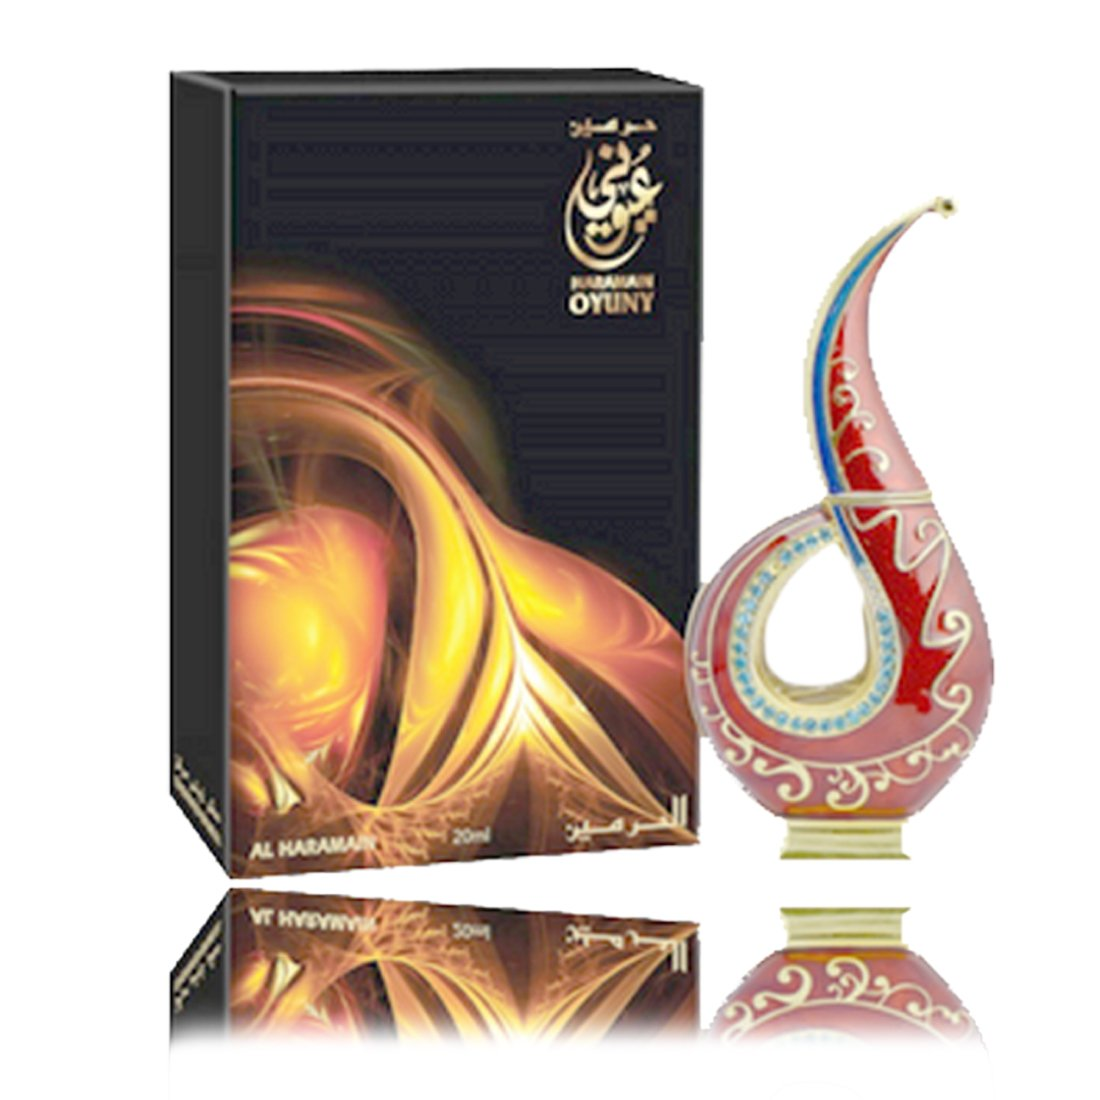 Al Haramain Oyuny Attar 20 ml